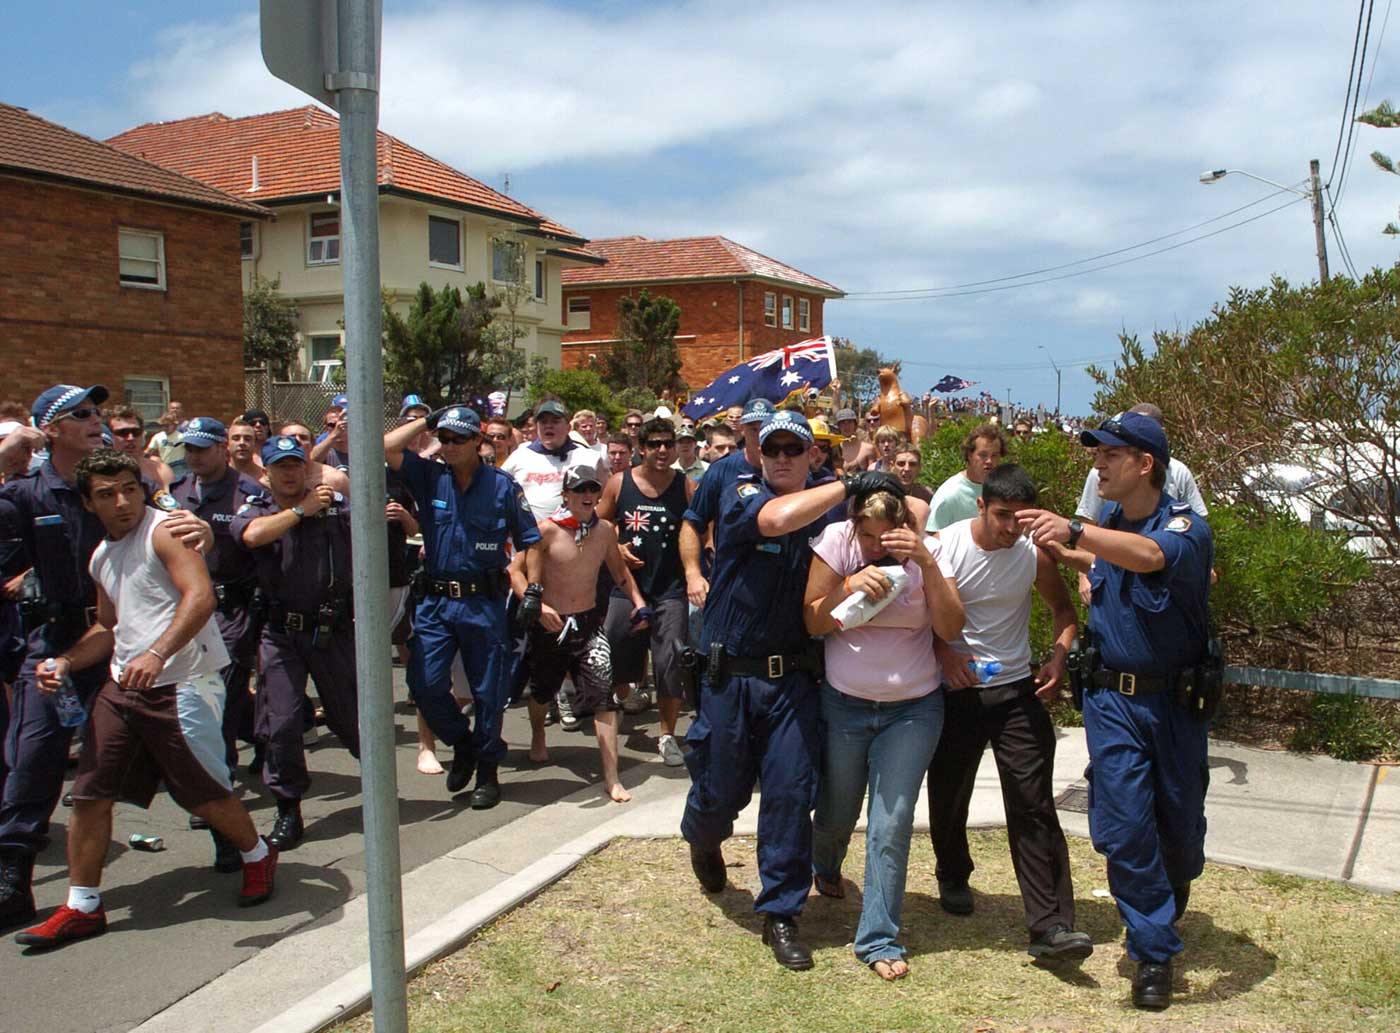 Young people being protected by police from a riot of predominantly white male protesters with the Australian flag.